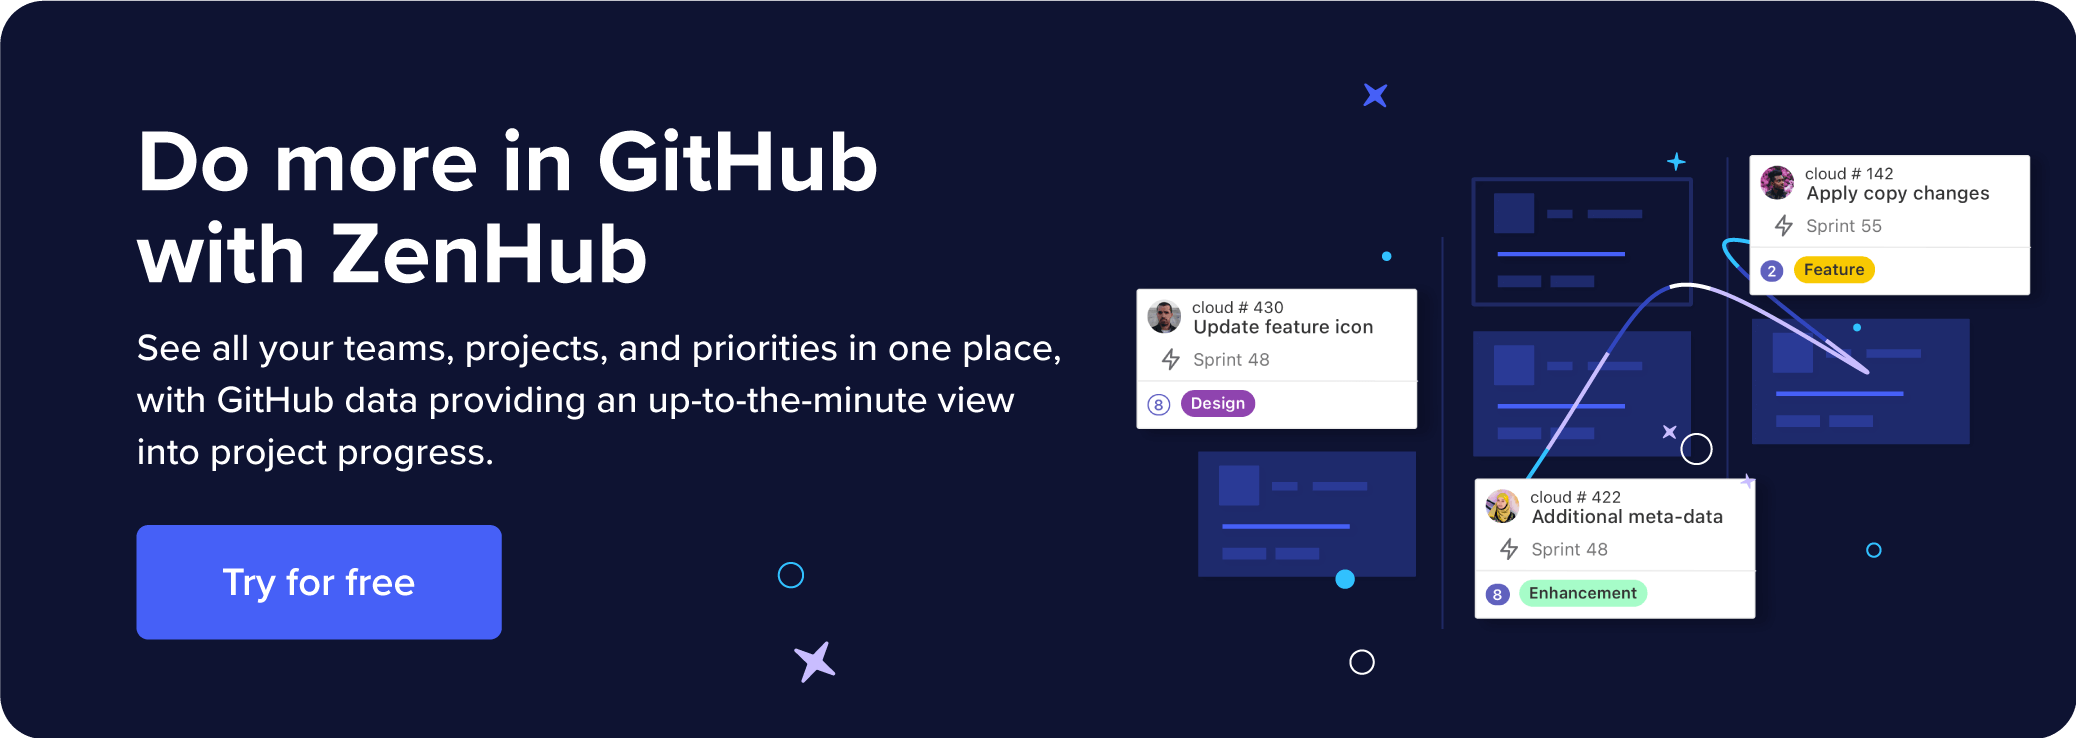 Describes how to use ZenHub with your GitHub data to see all your teams, projects, and priorities in one place.